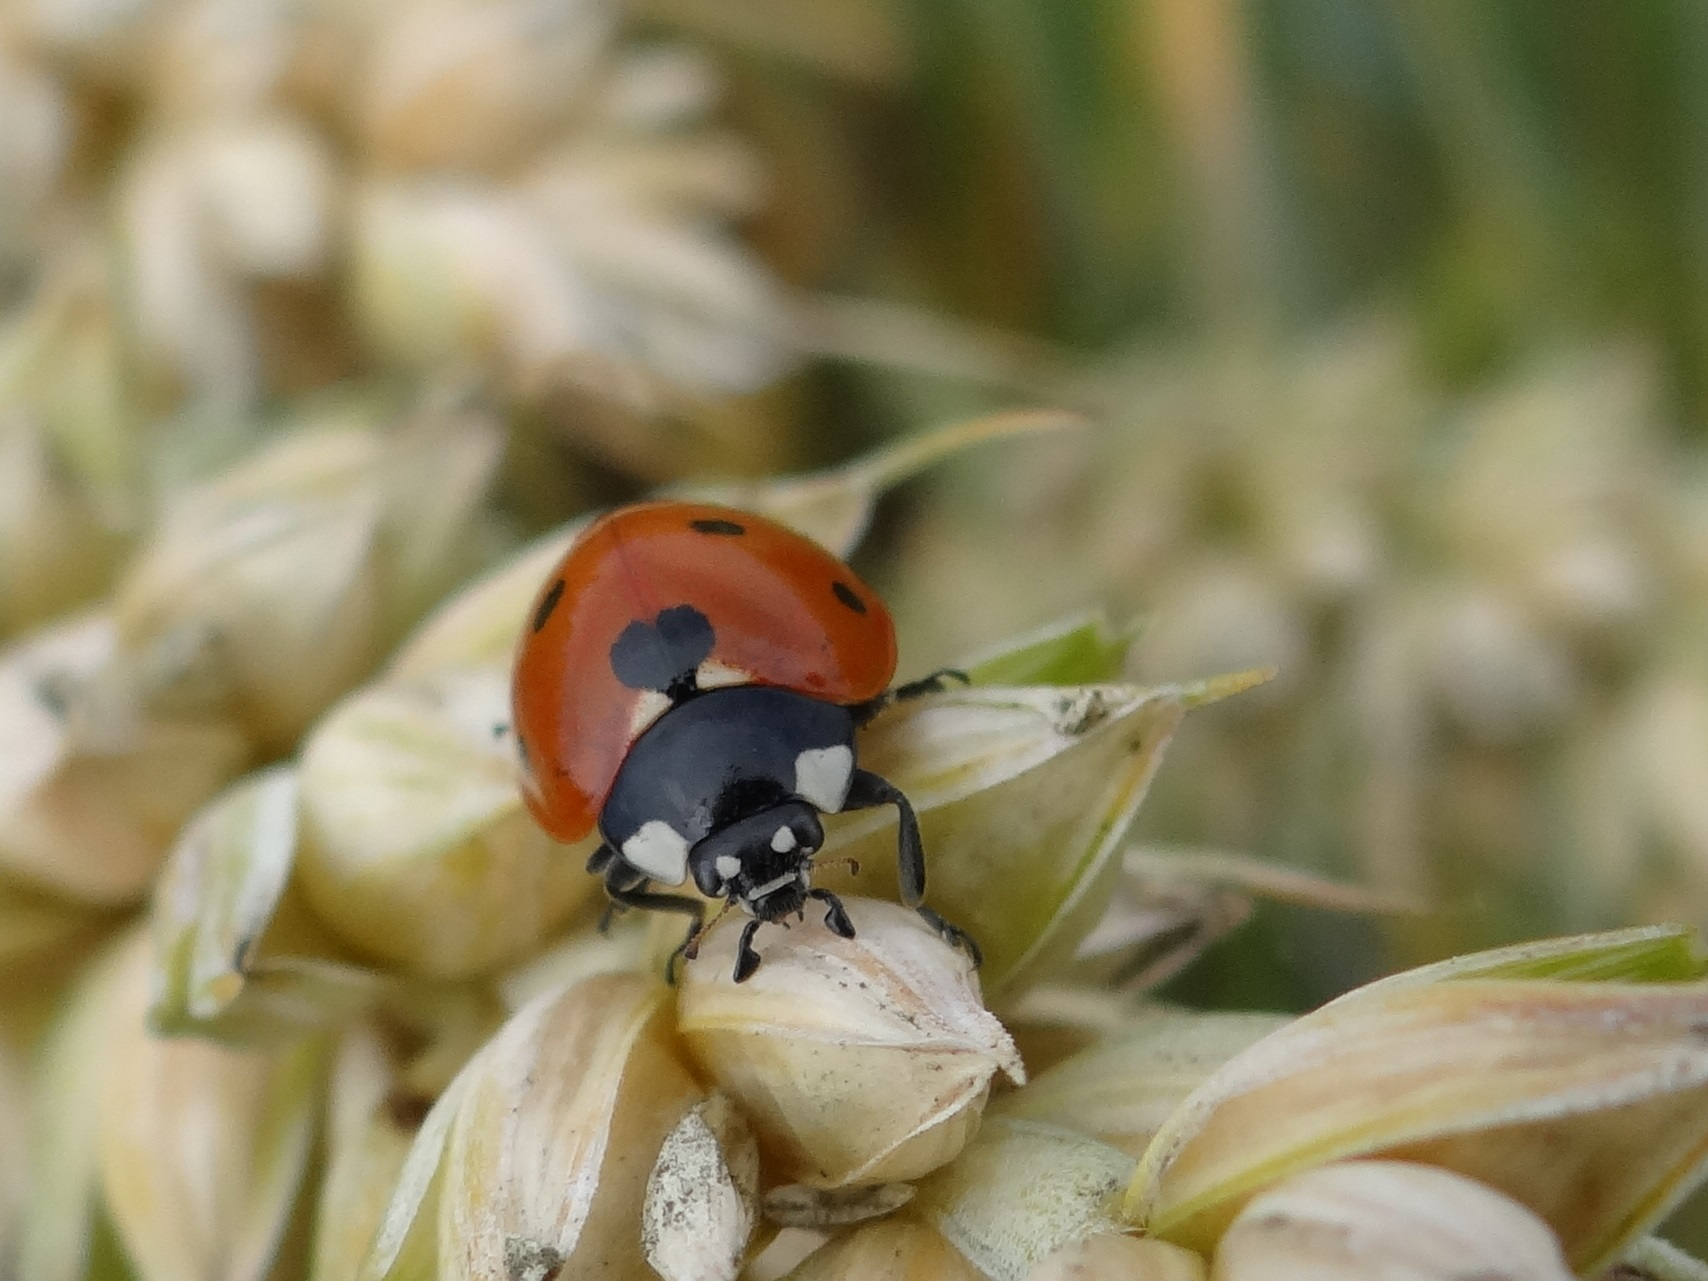 Predators such as ladybirds can help keep down the population of pests such as aphids on wheat. Image credit - Severin Hatt